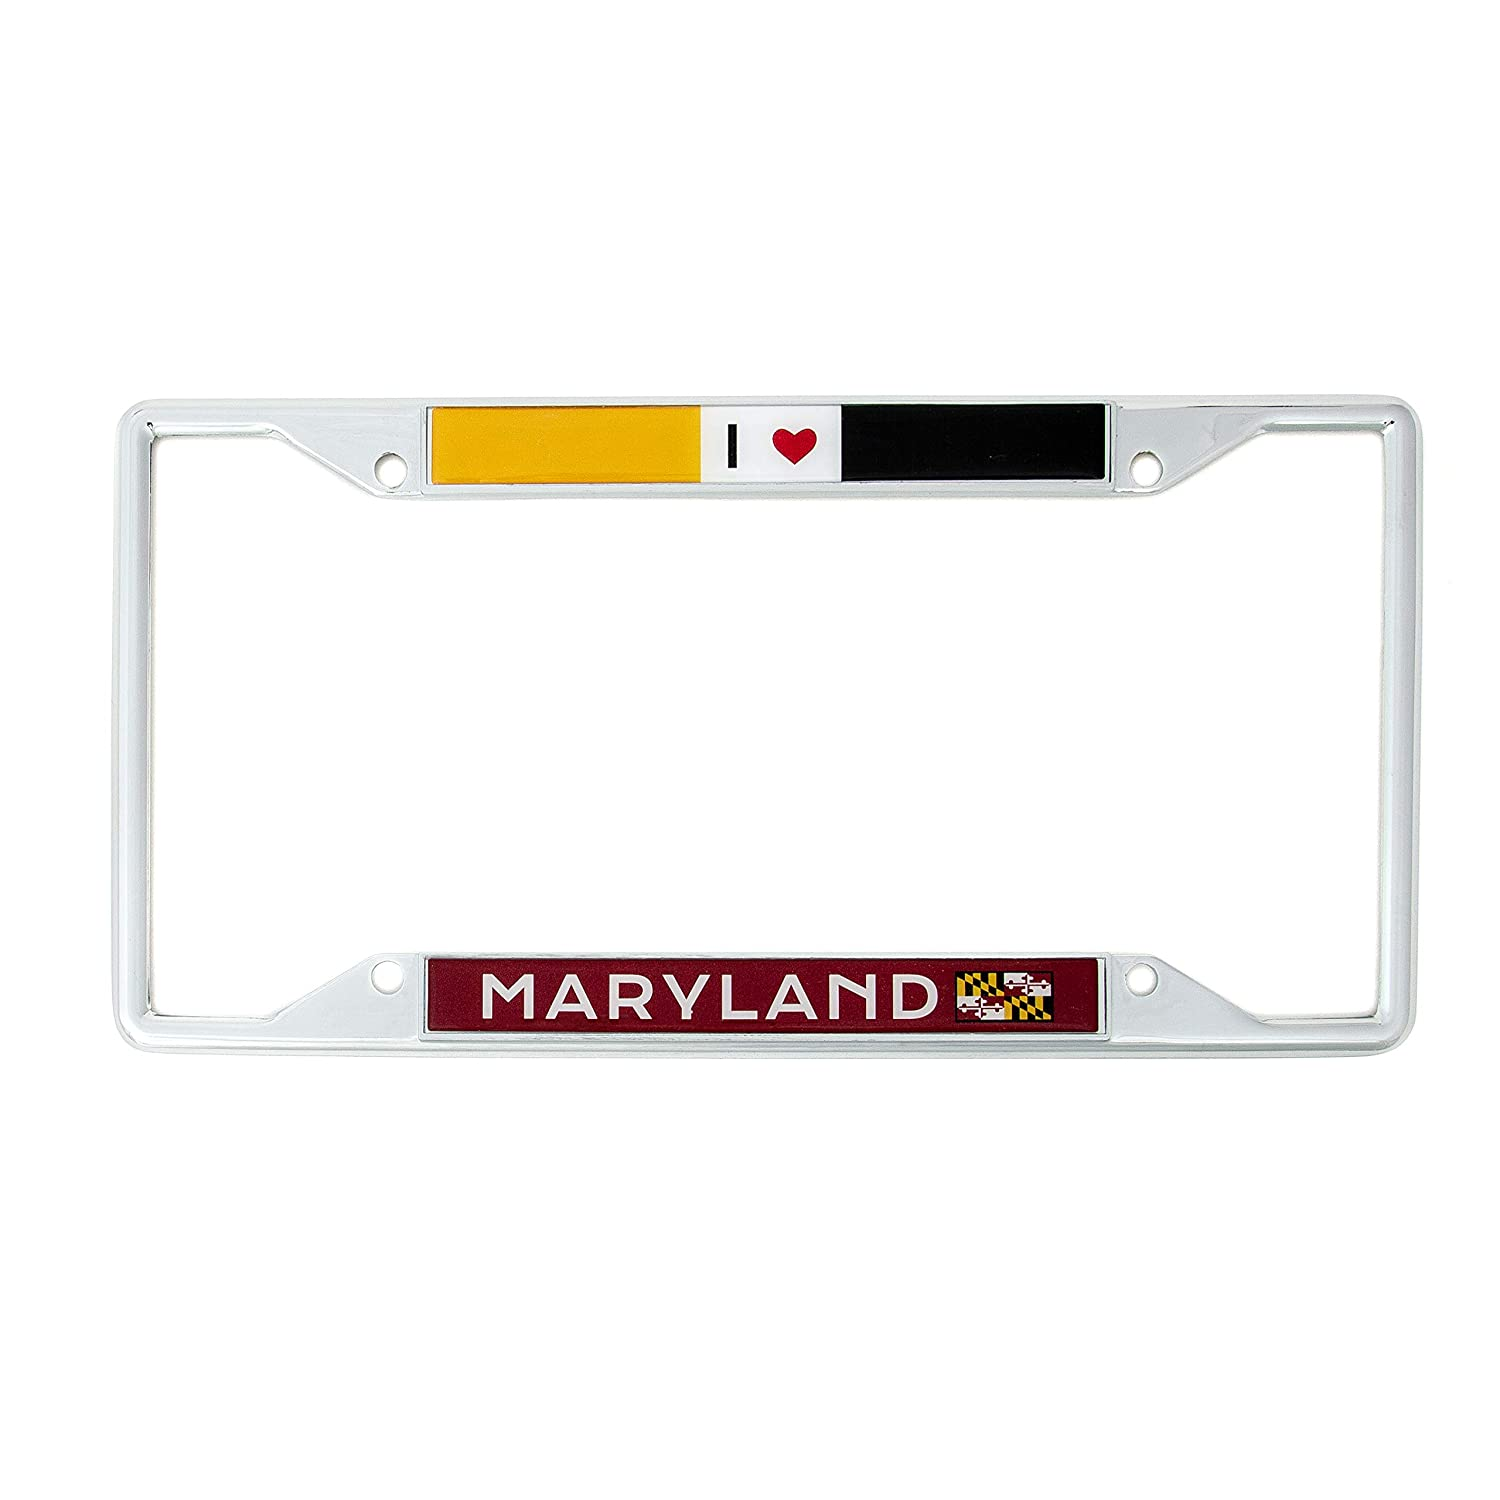 Desert Cactus State of Maryland I Heart Love License Plate Frame for Front Back of Car Vehicle Truck